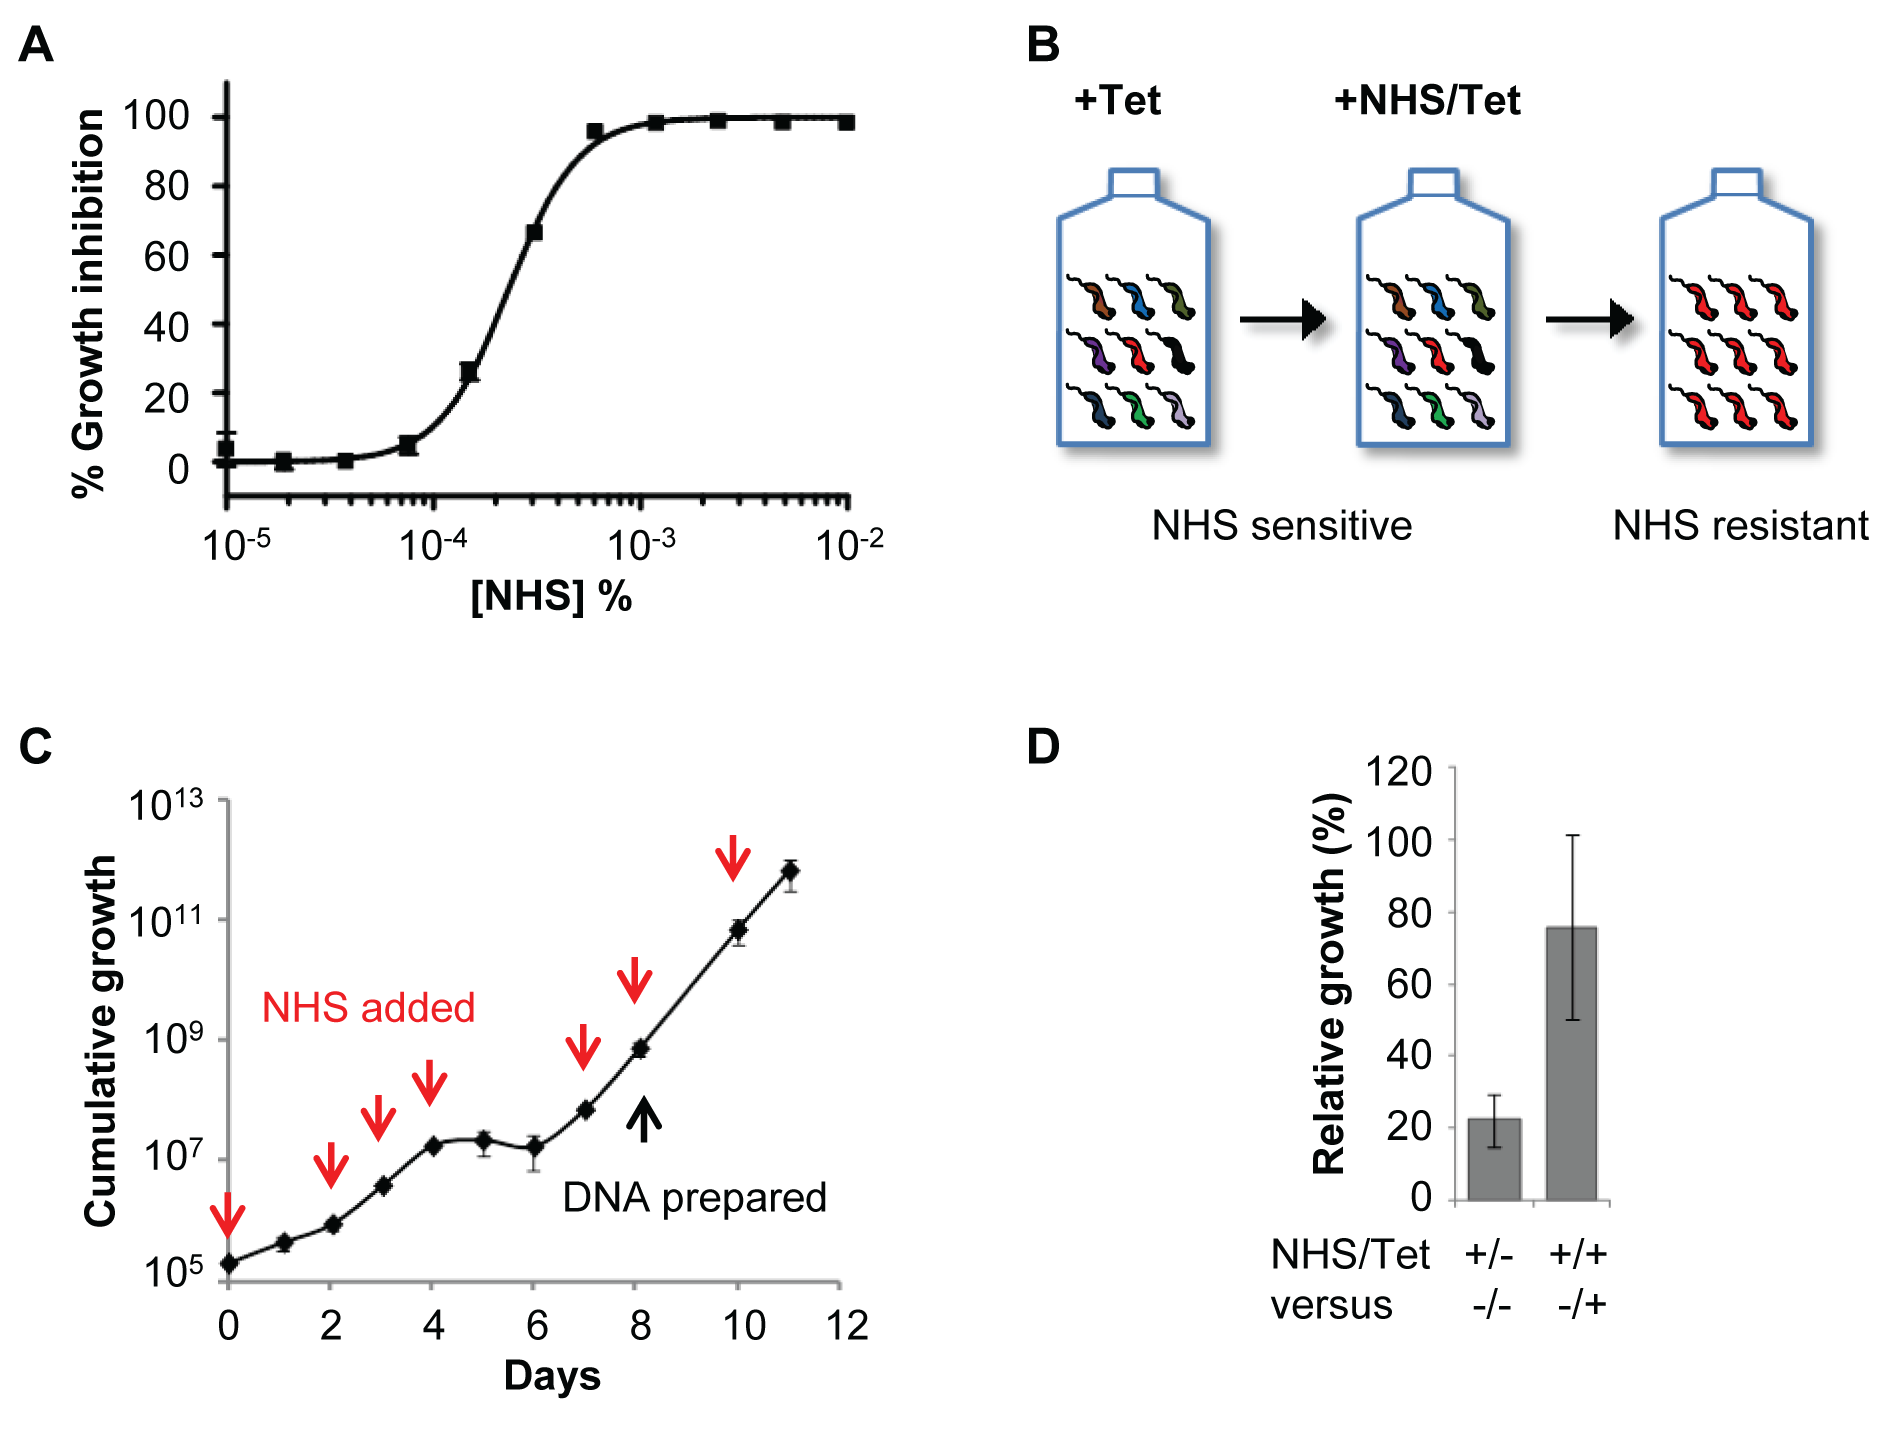 A genome-scale <i>T. b. brucei</i> RNAi library screening strategy for human serum resistance.